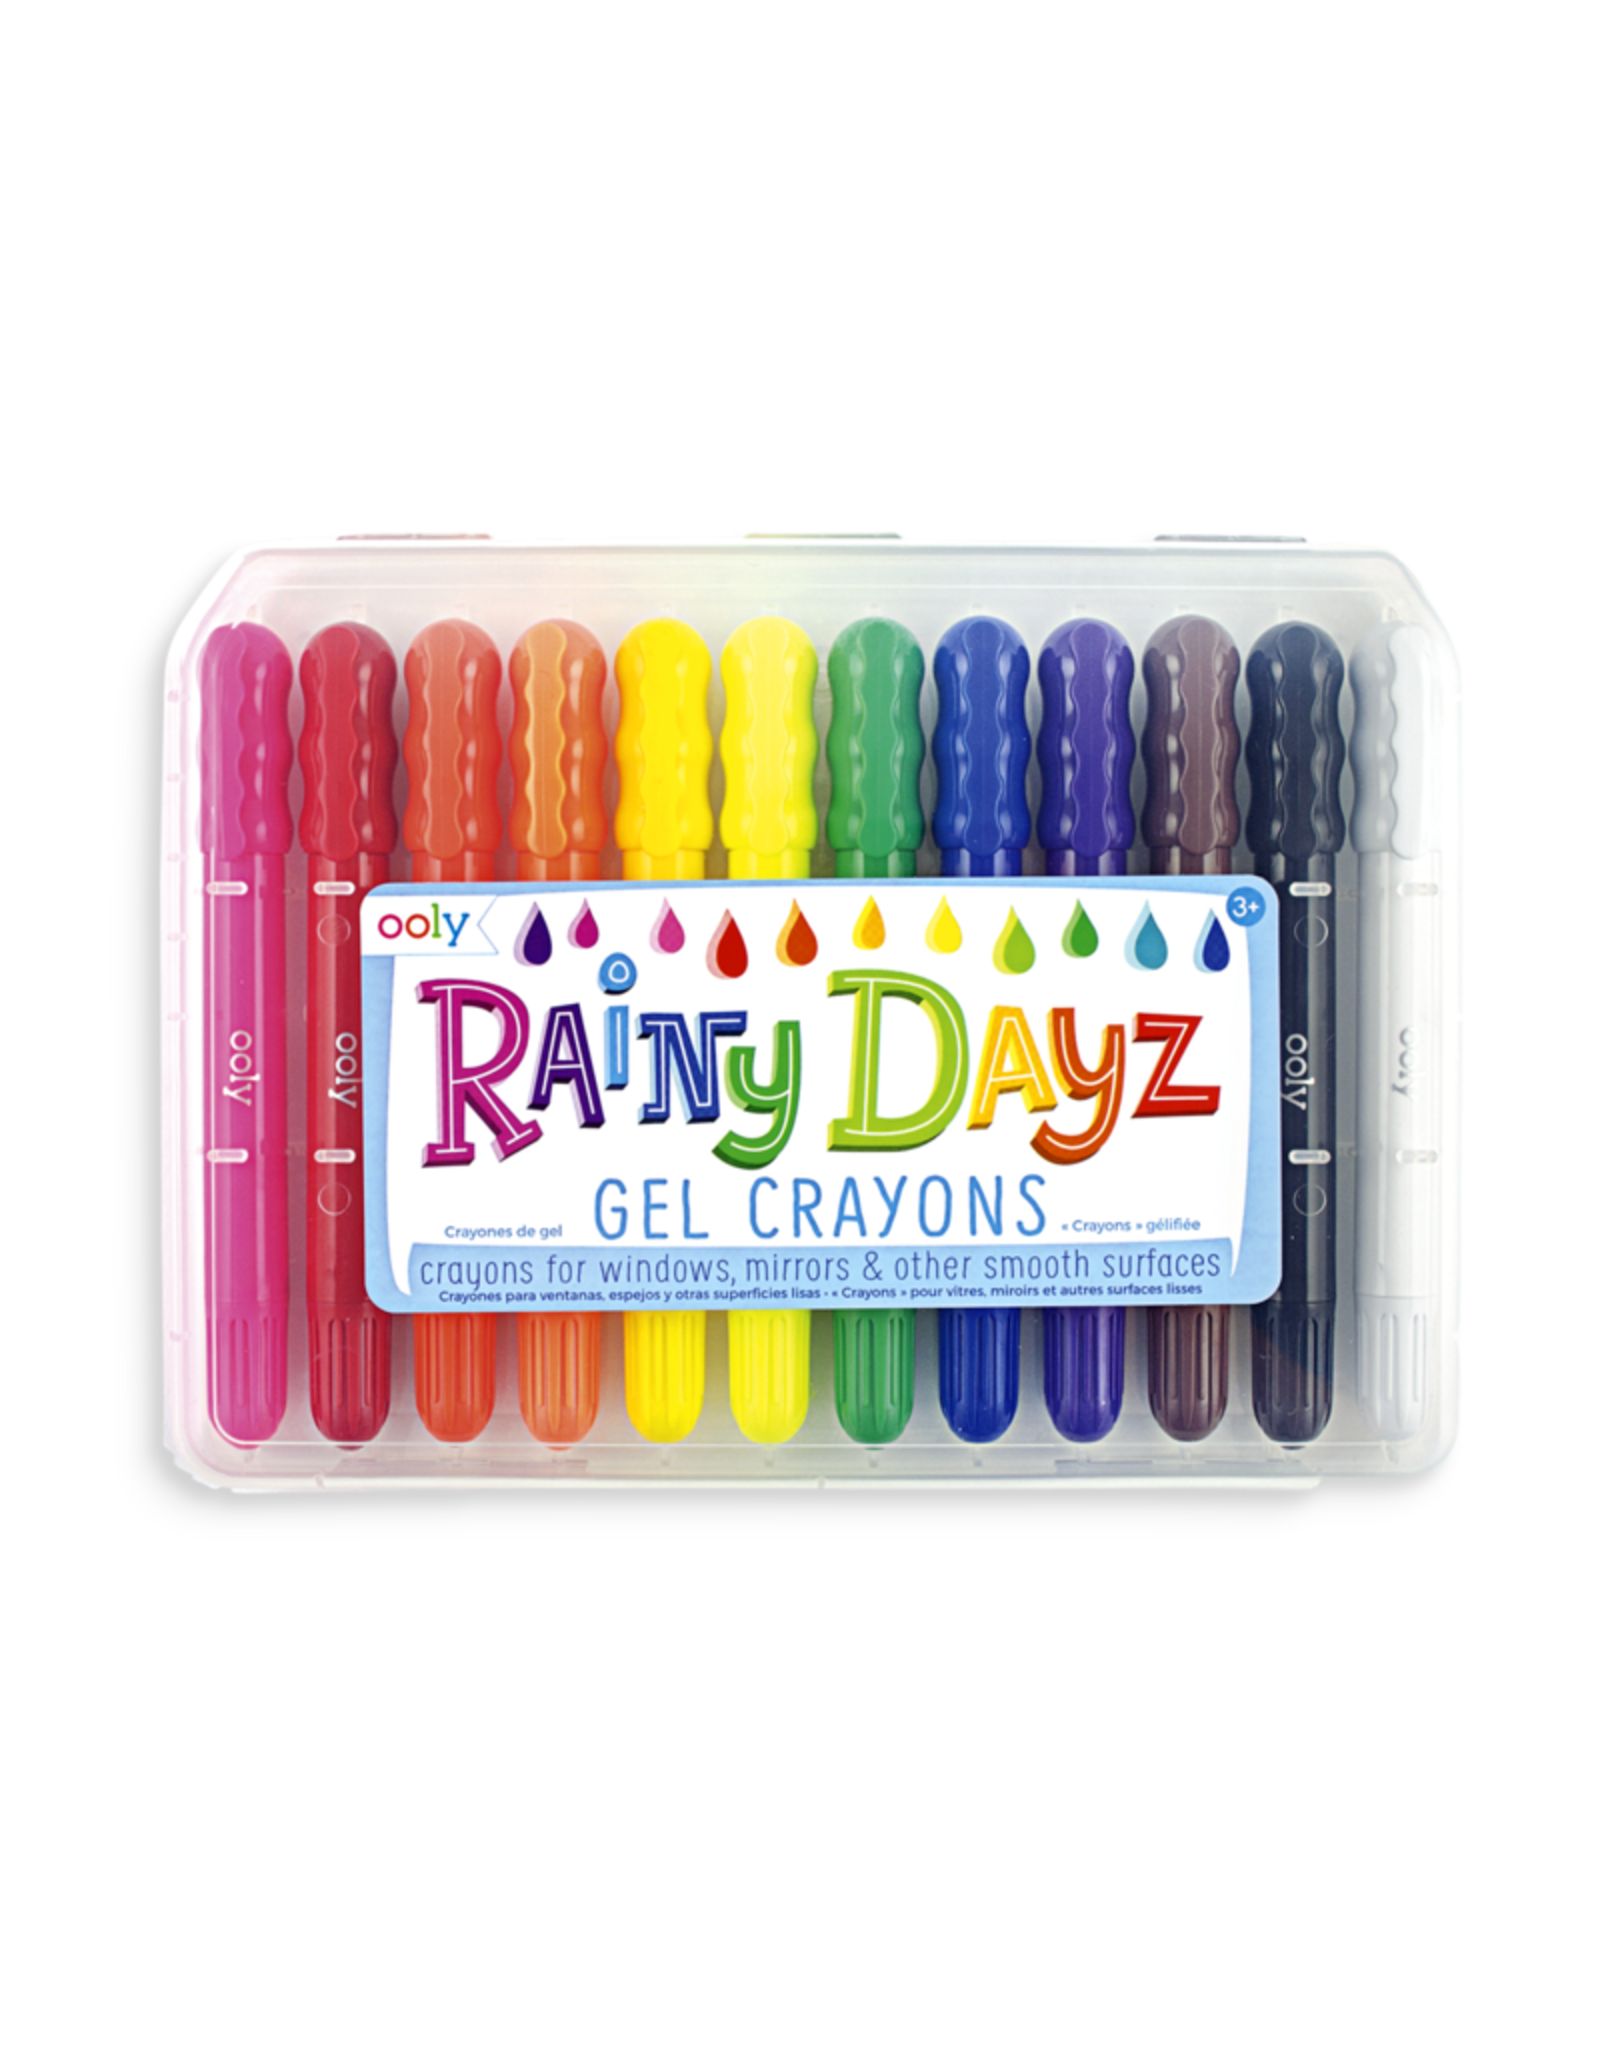 Ooly Rainy Dayz Gel Crayons - Set Of 12